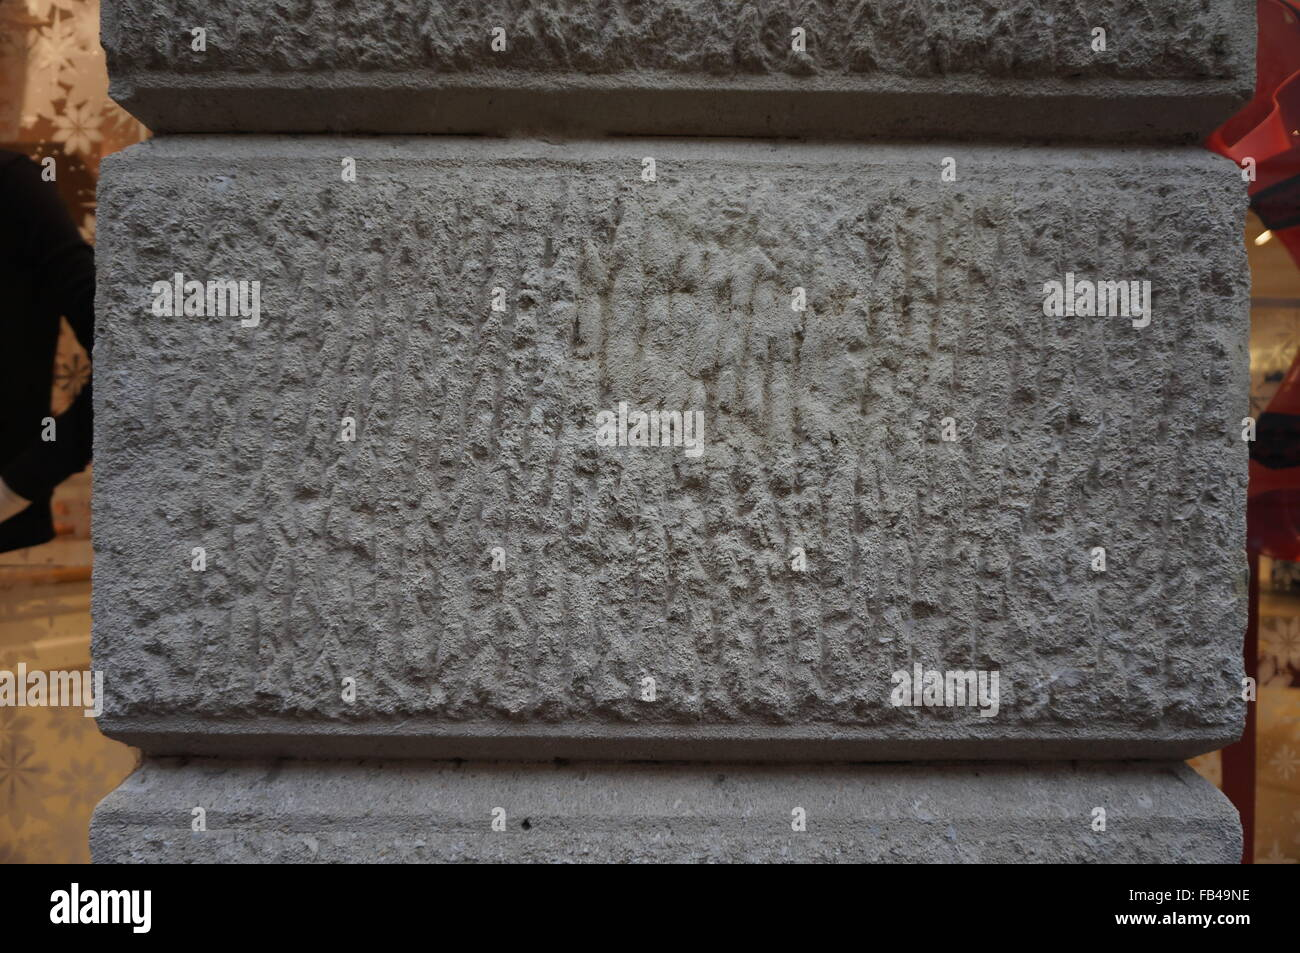 Stone brick with high level texture - Stock Image